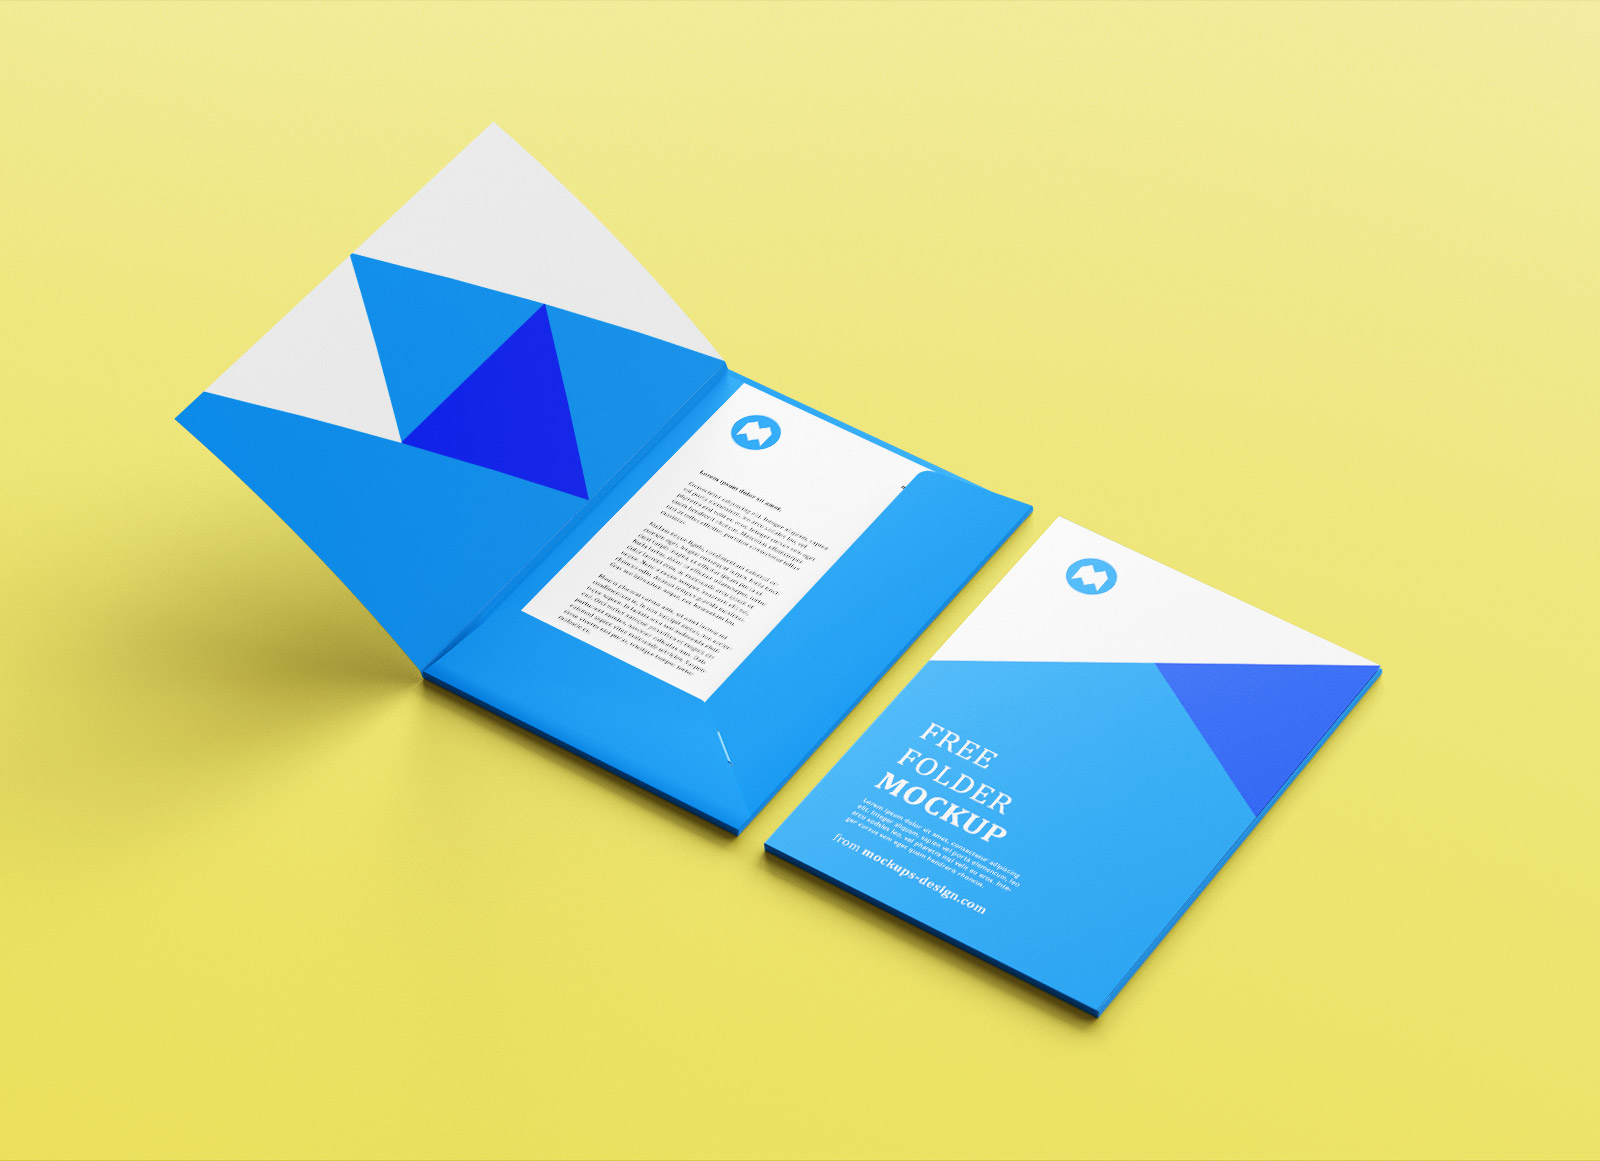 Free-A4-Size-Folder-Mockup-PSD-Set-3